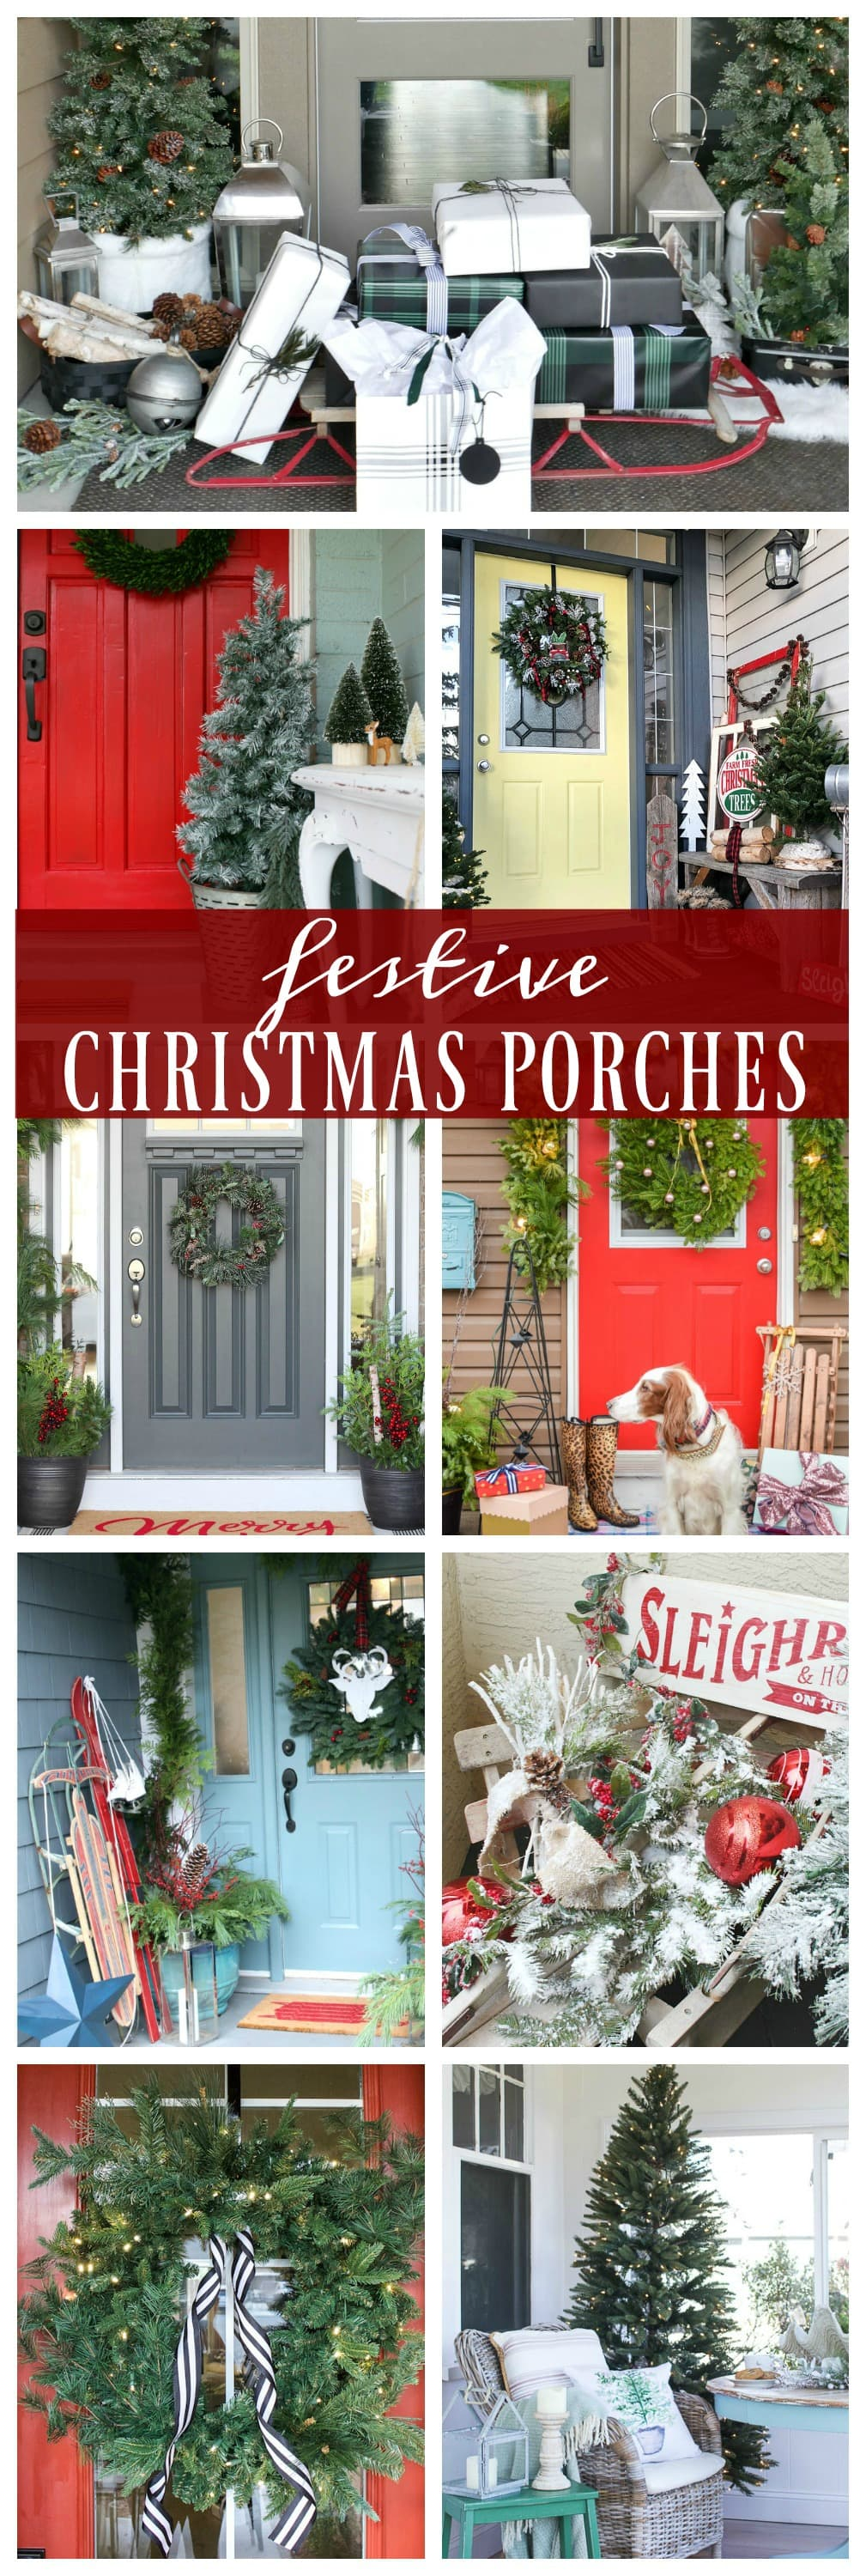 Festive Christmas Porches